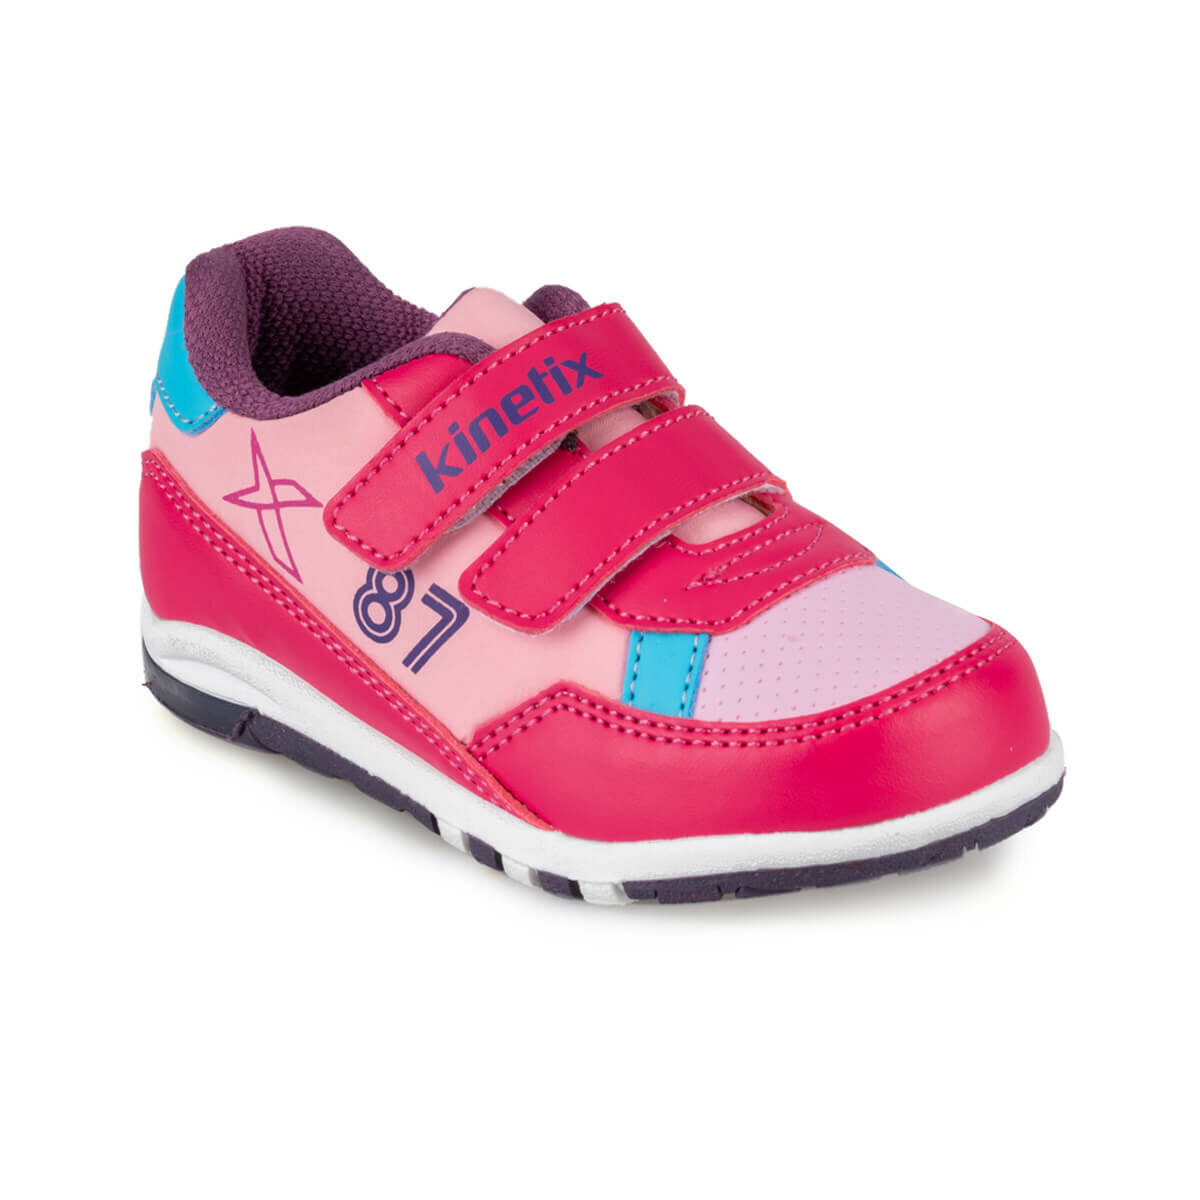 FLO MELSI 9PR Light Pink Female Child Sneaker Shoes KINETIX